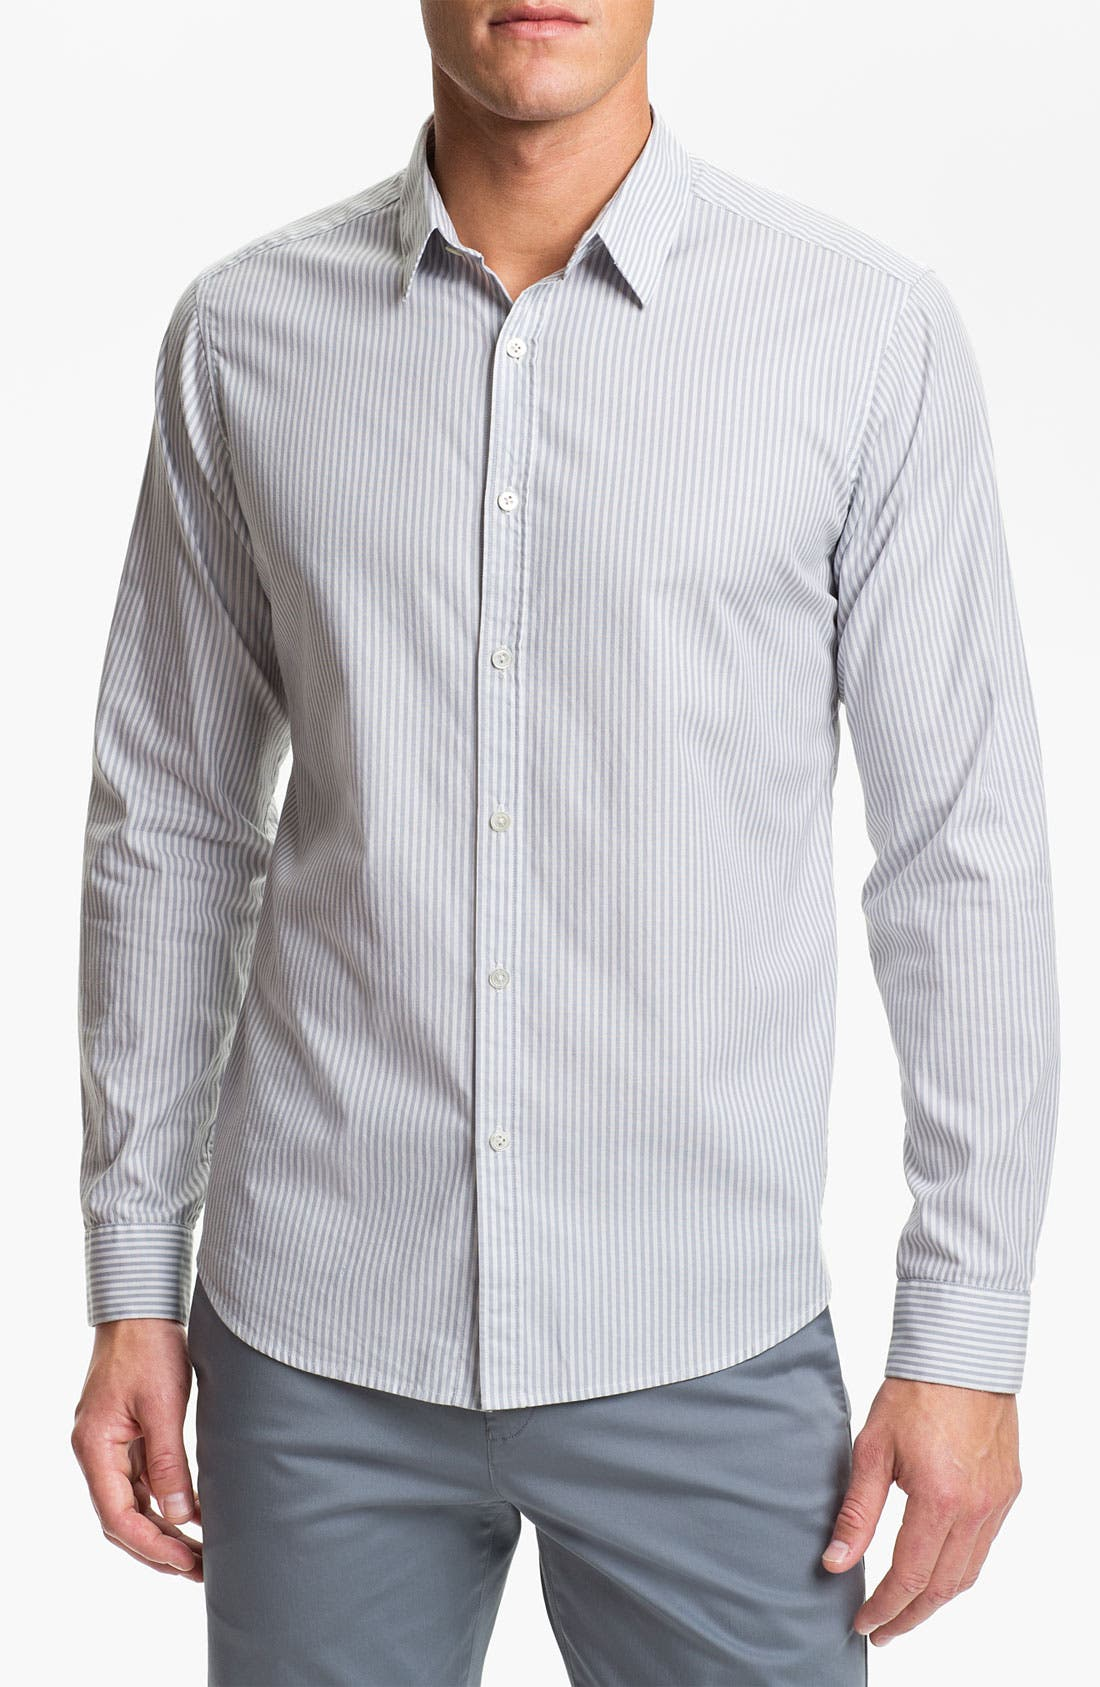 Alternate Image 1 Selected - Theory 'Zack' Cotton Stretch Shirt